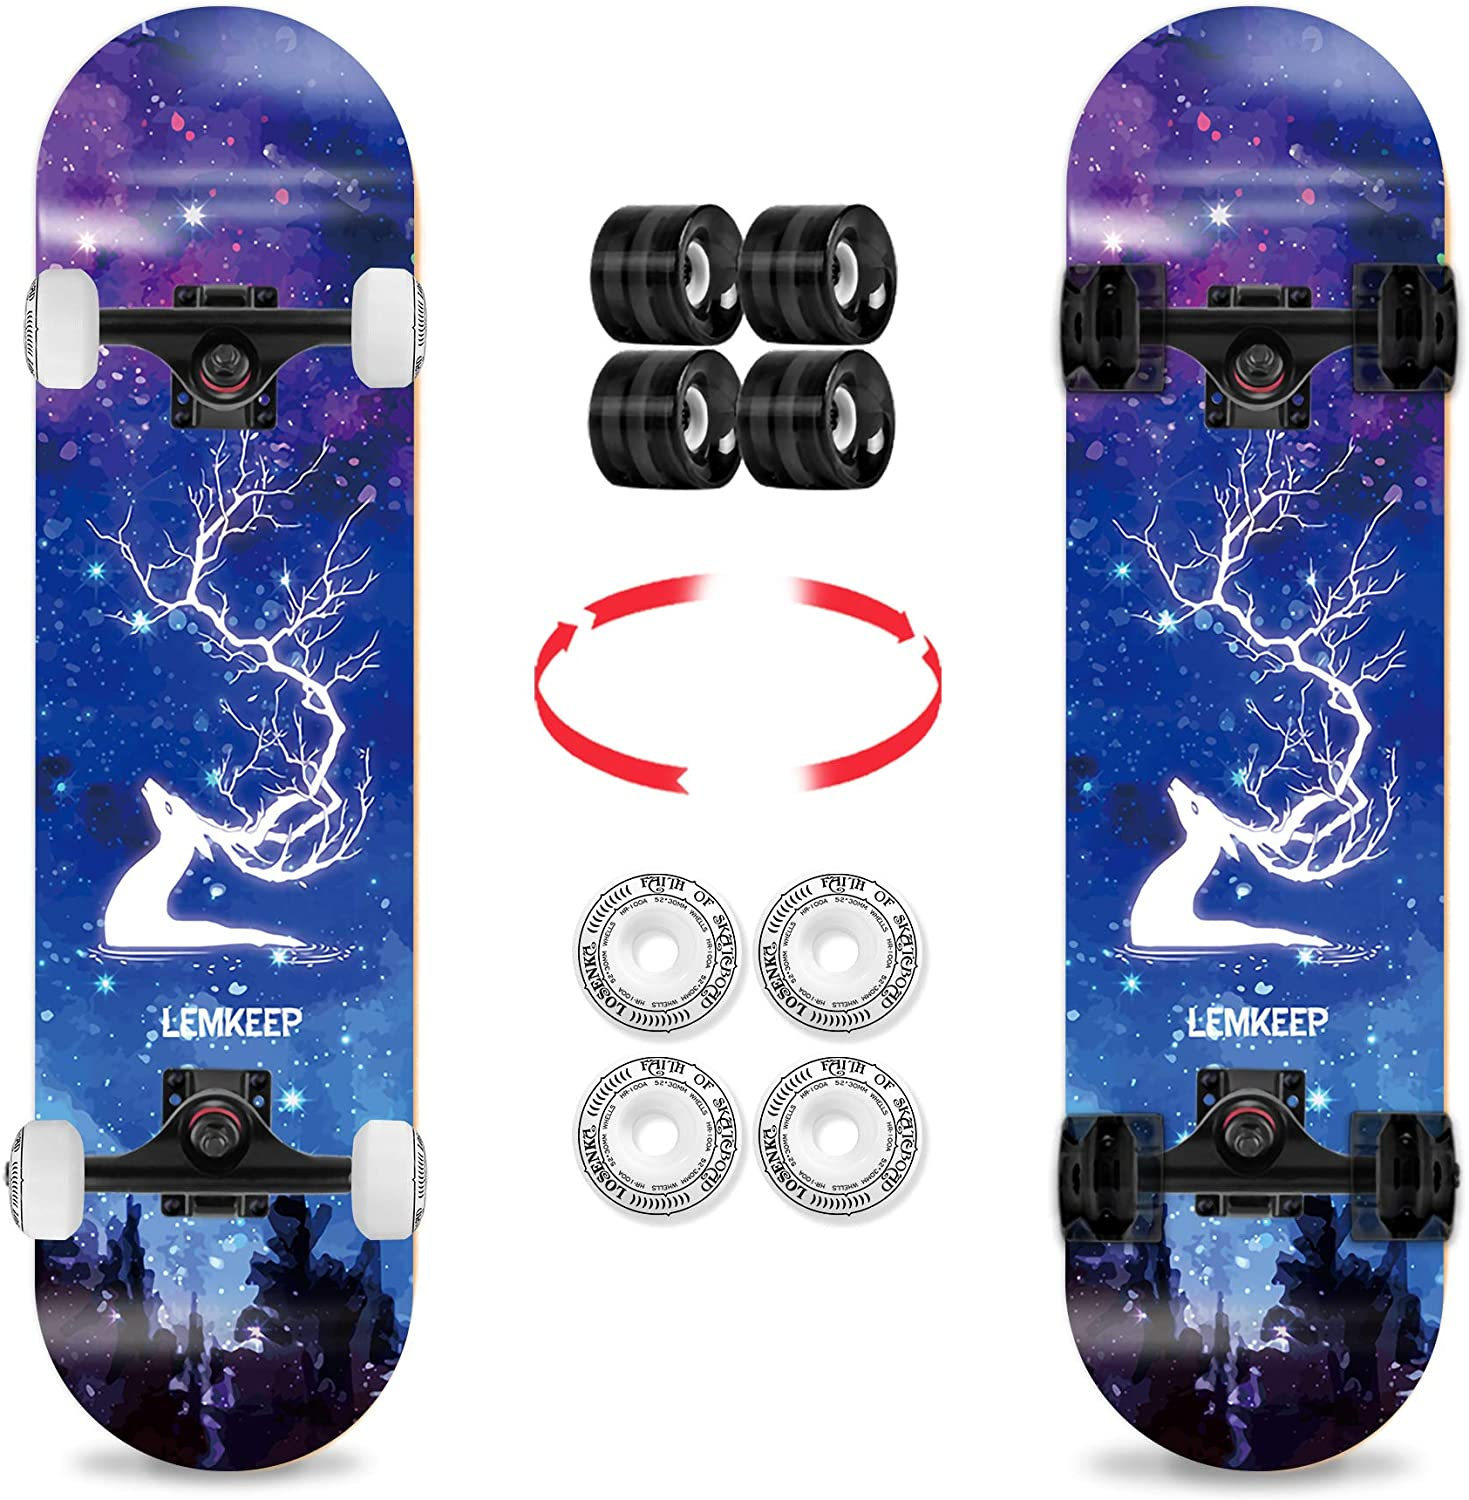 LOSENKA 31 Pro Complete Skateboard with 2 Sets Wheels,7 Layer Canadian Maple Double Kick Deck Concave Board with Tool for Beginners and Pro